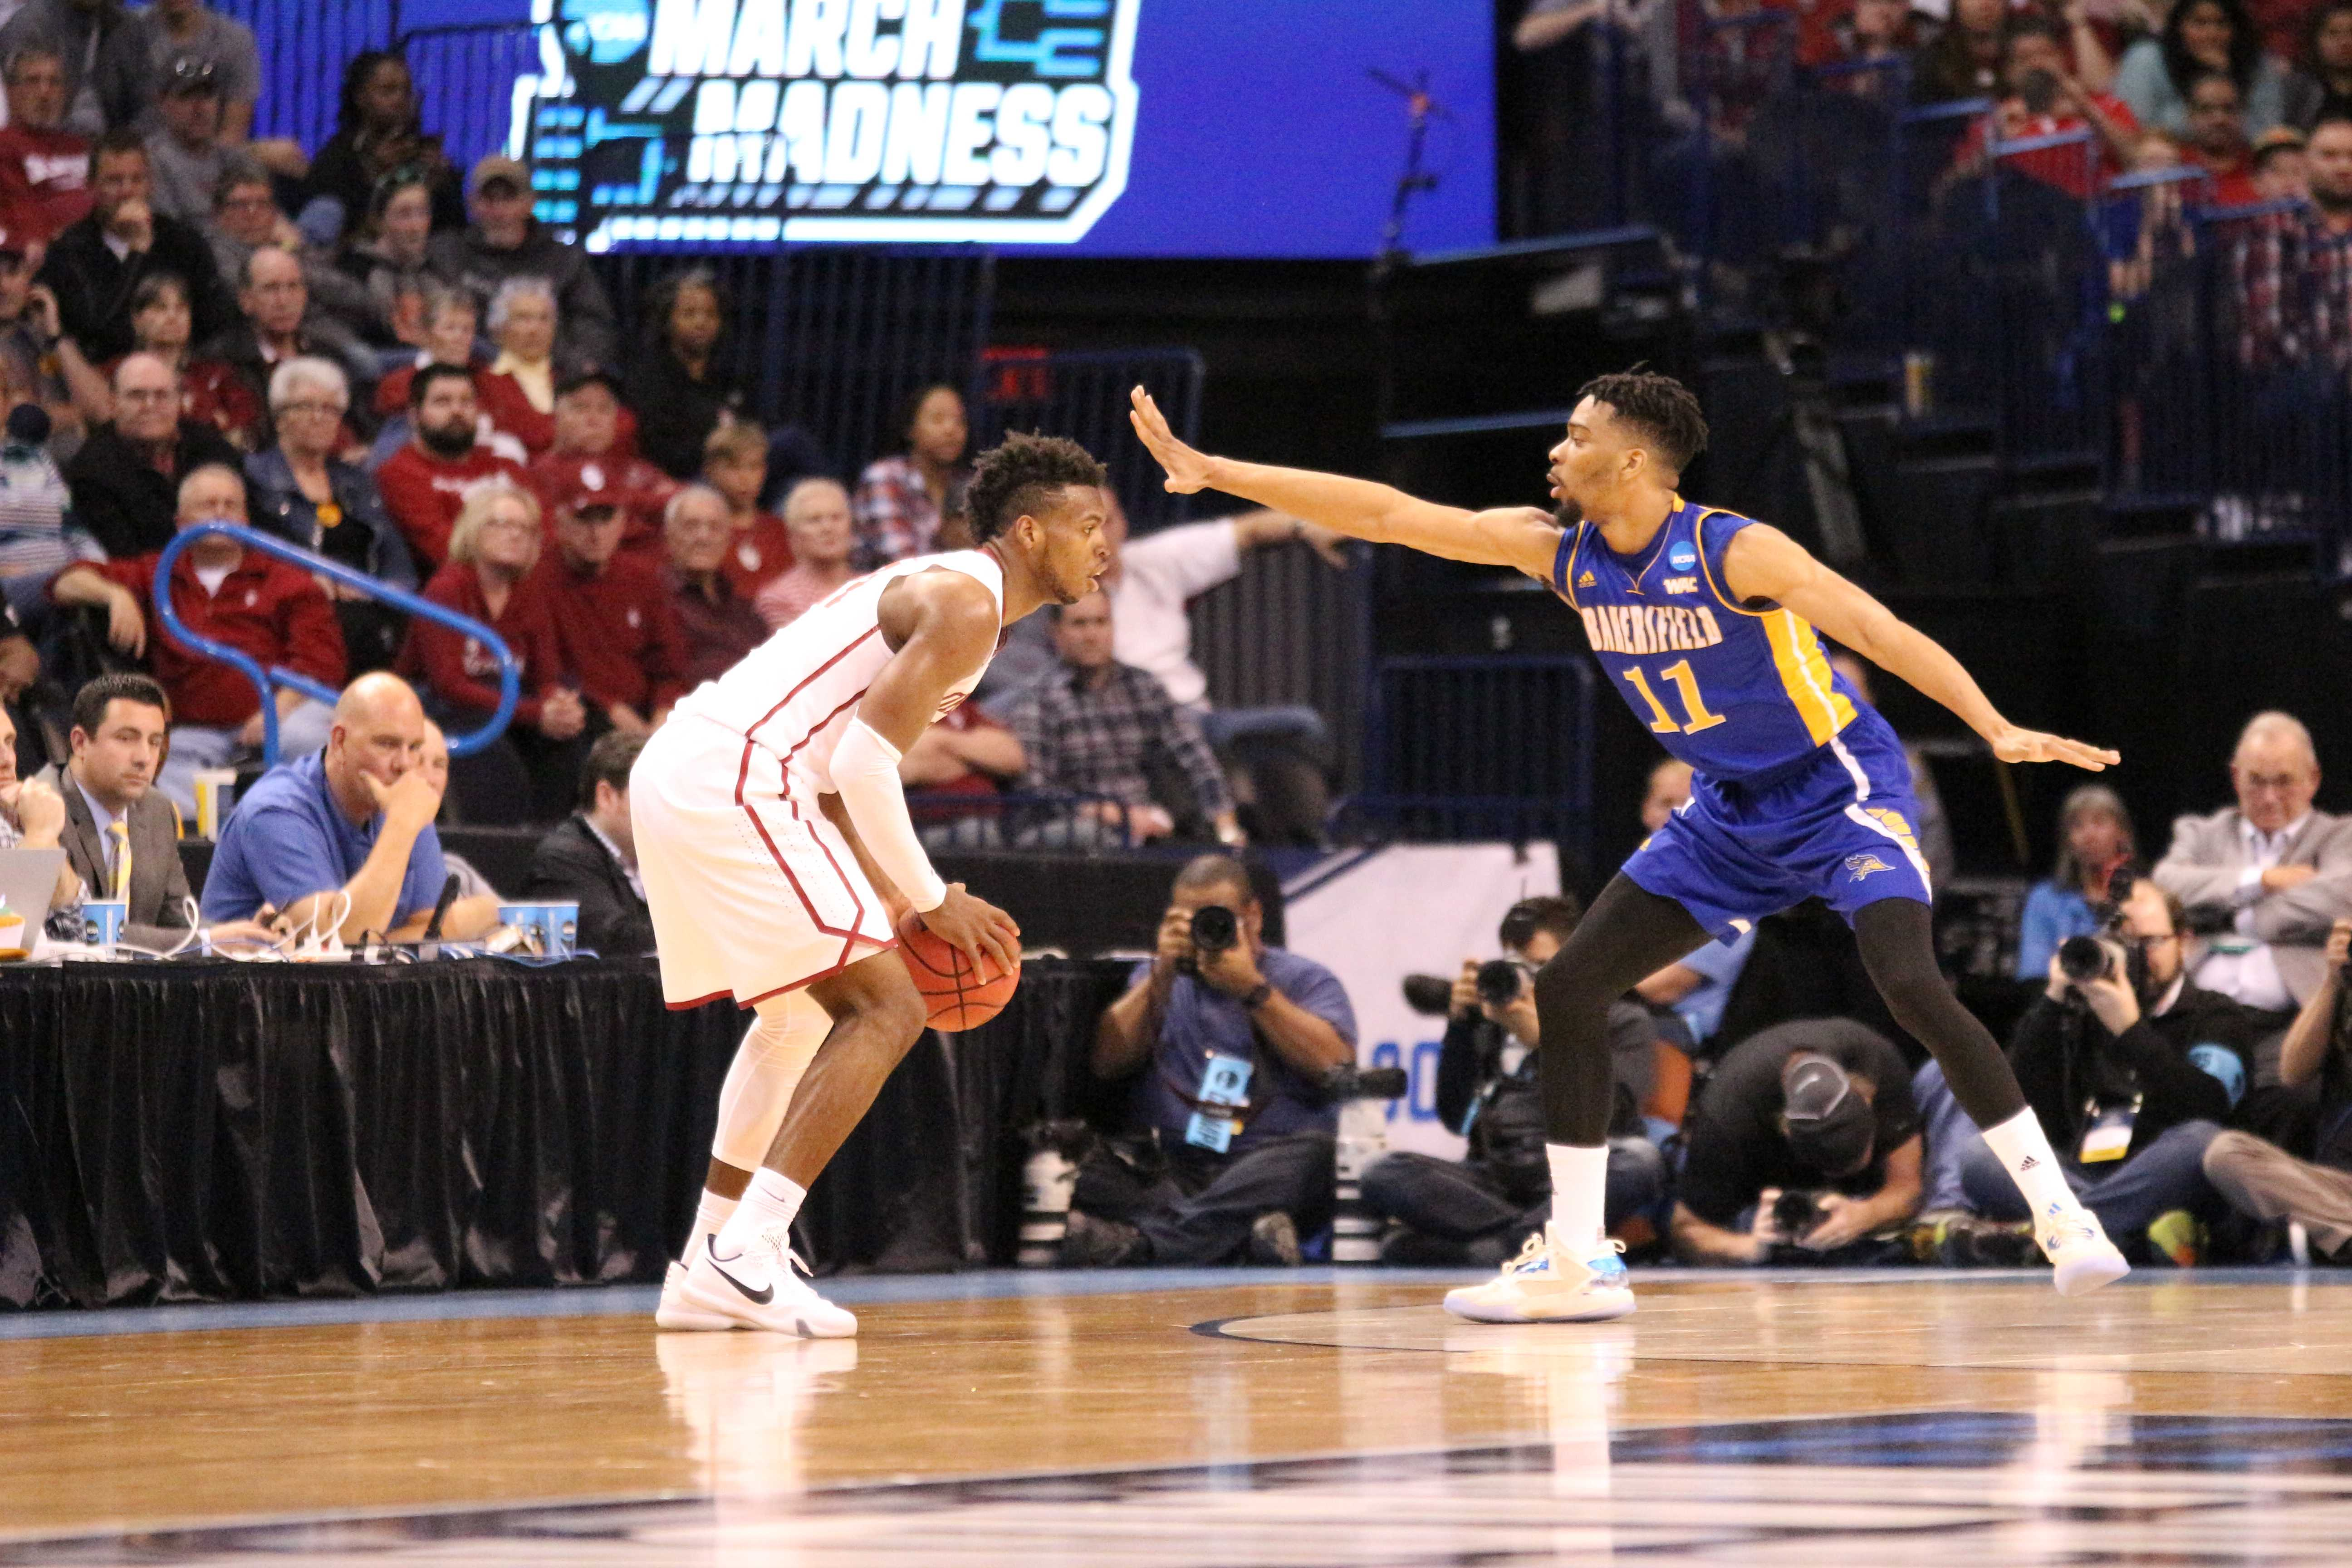 Redshirt-junior Jaylin Airington guards senior guard Buddy Hield during Friday's game. Photo by Alejandra Flores/The Runner